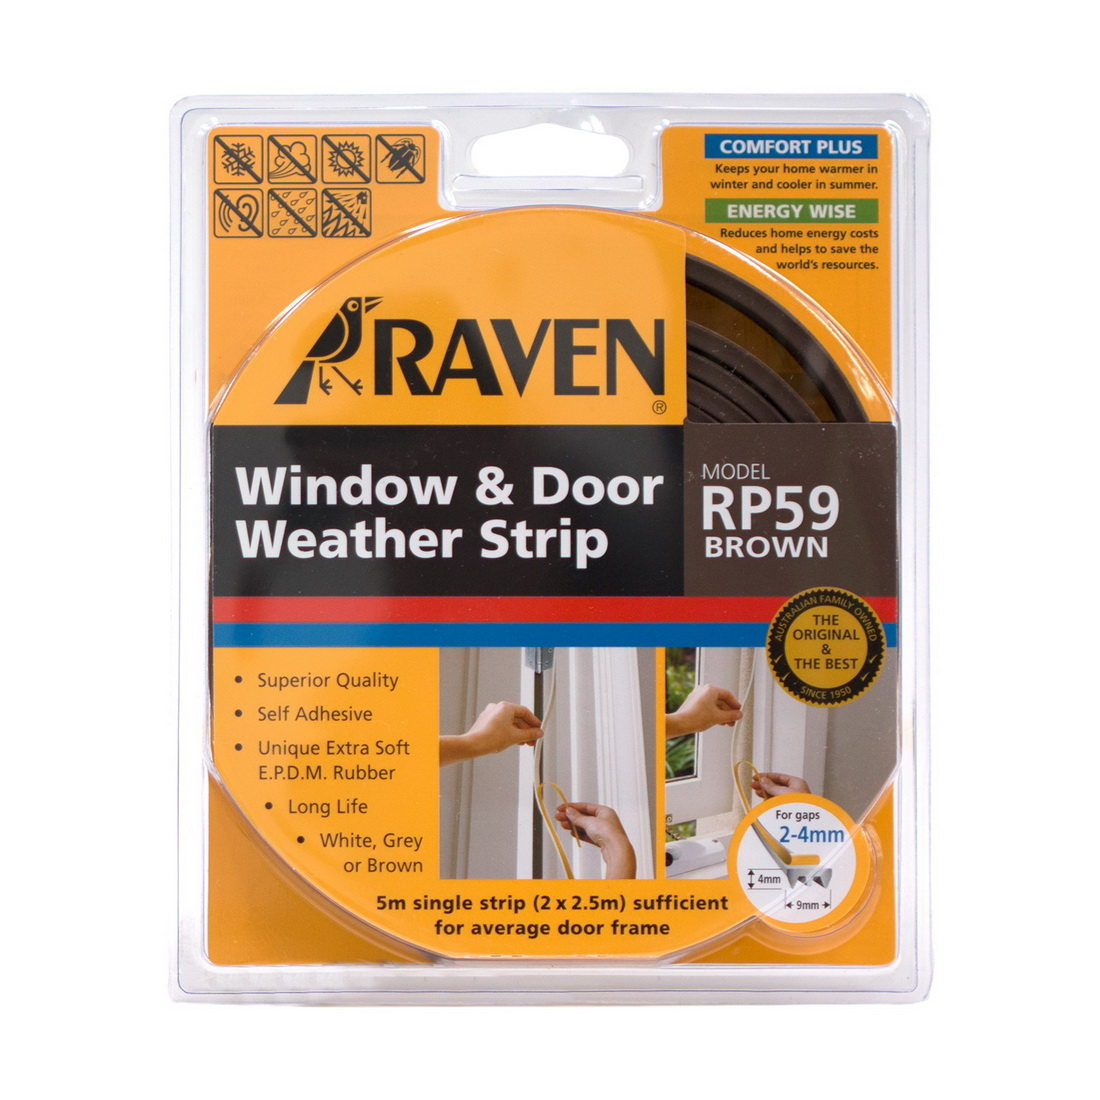 RP59 Weather Strip 9 x 4mm x 5m EPDM Rubber Brown 4982